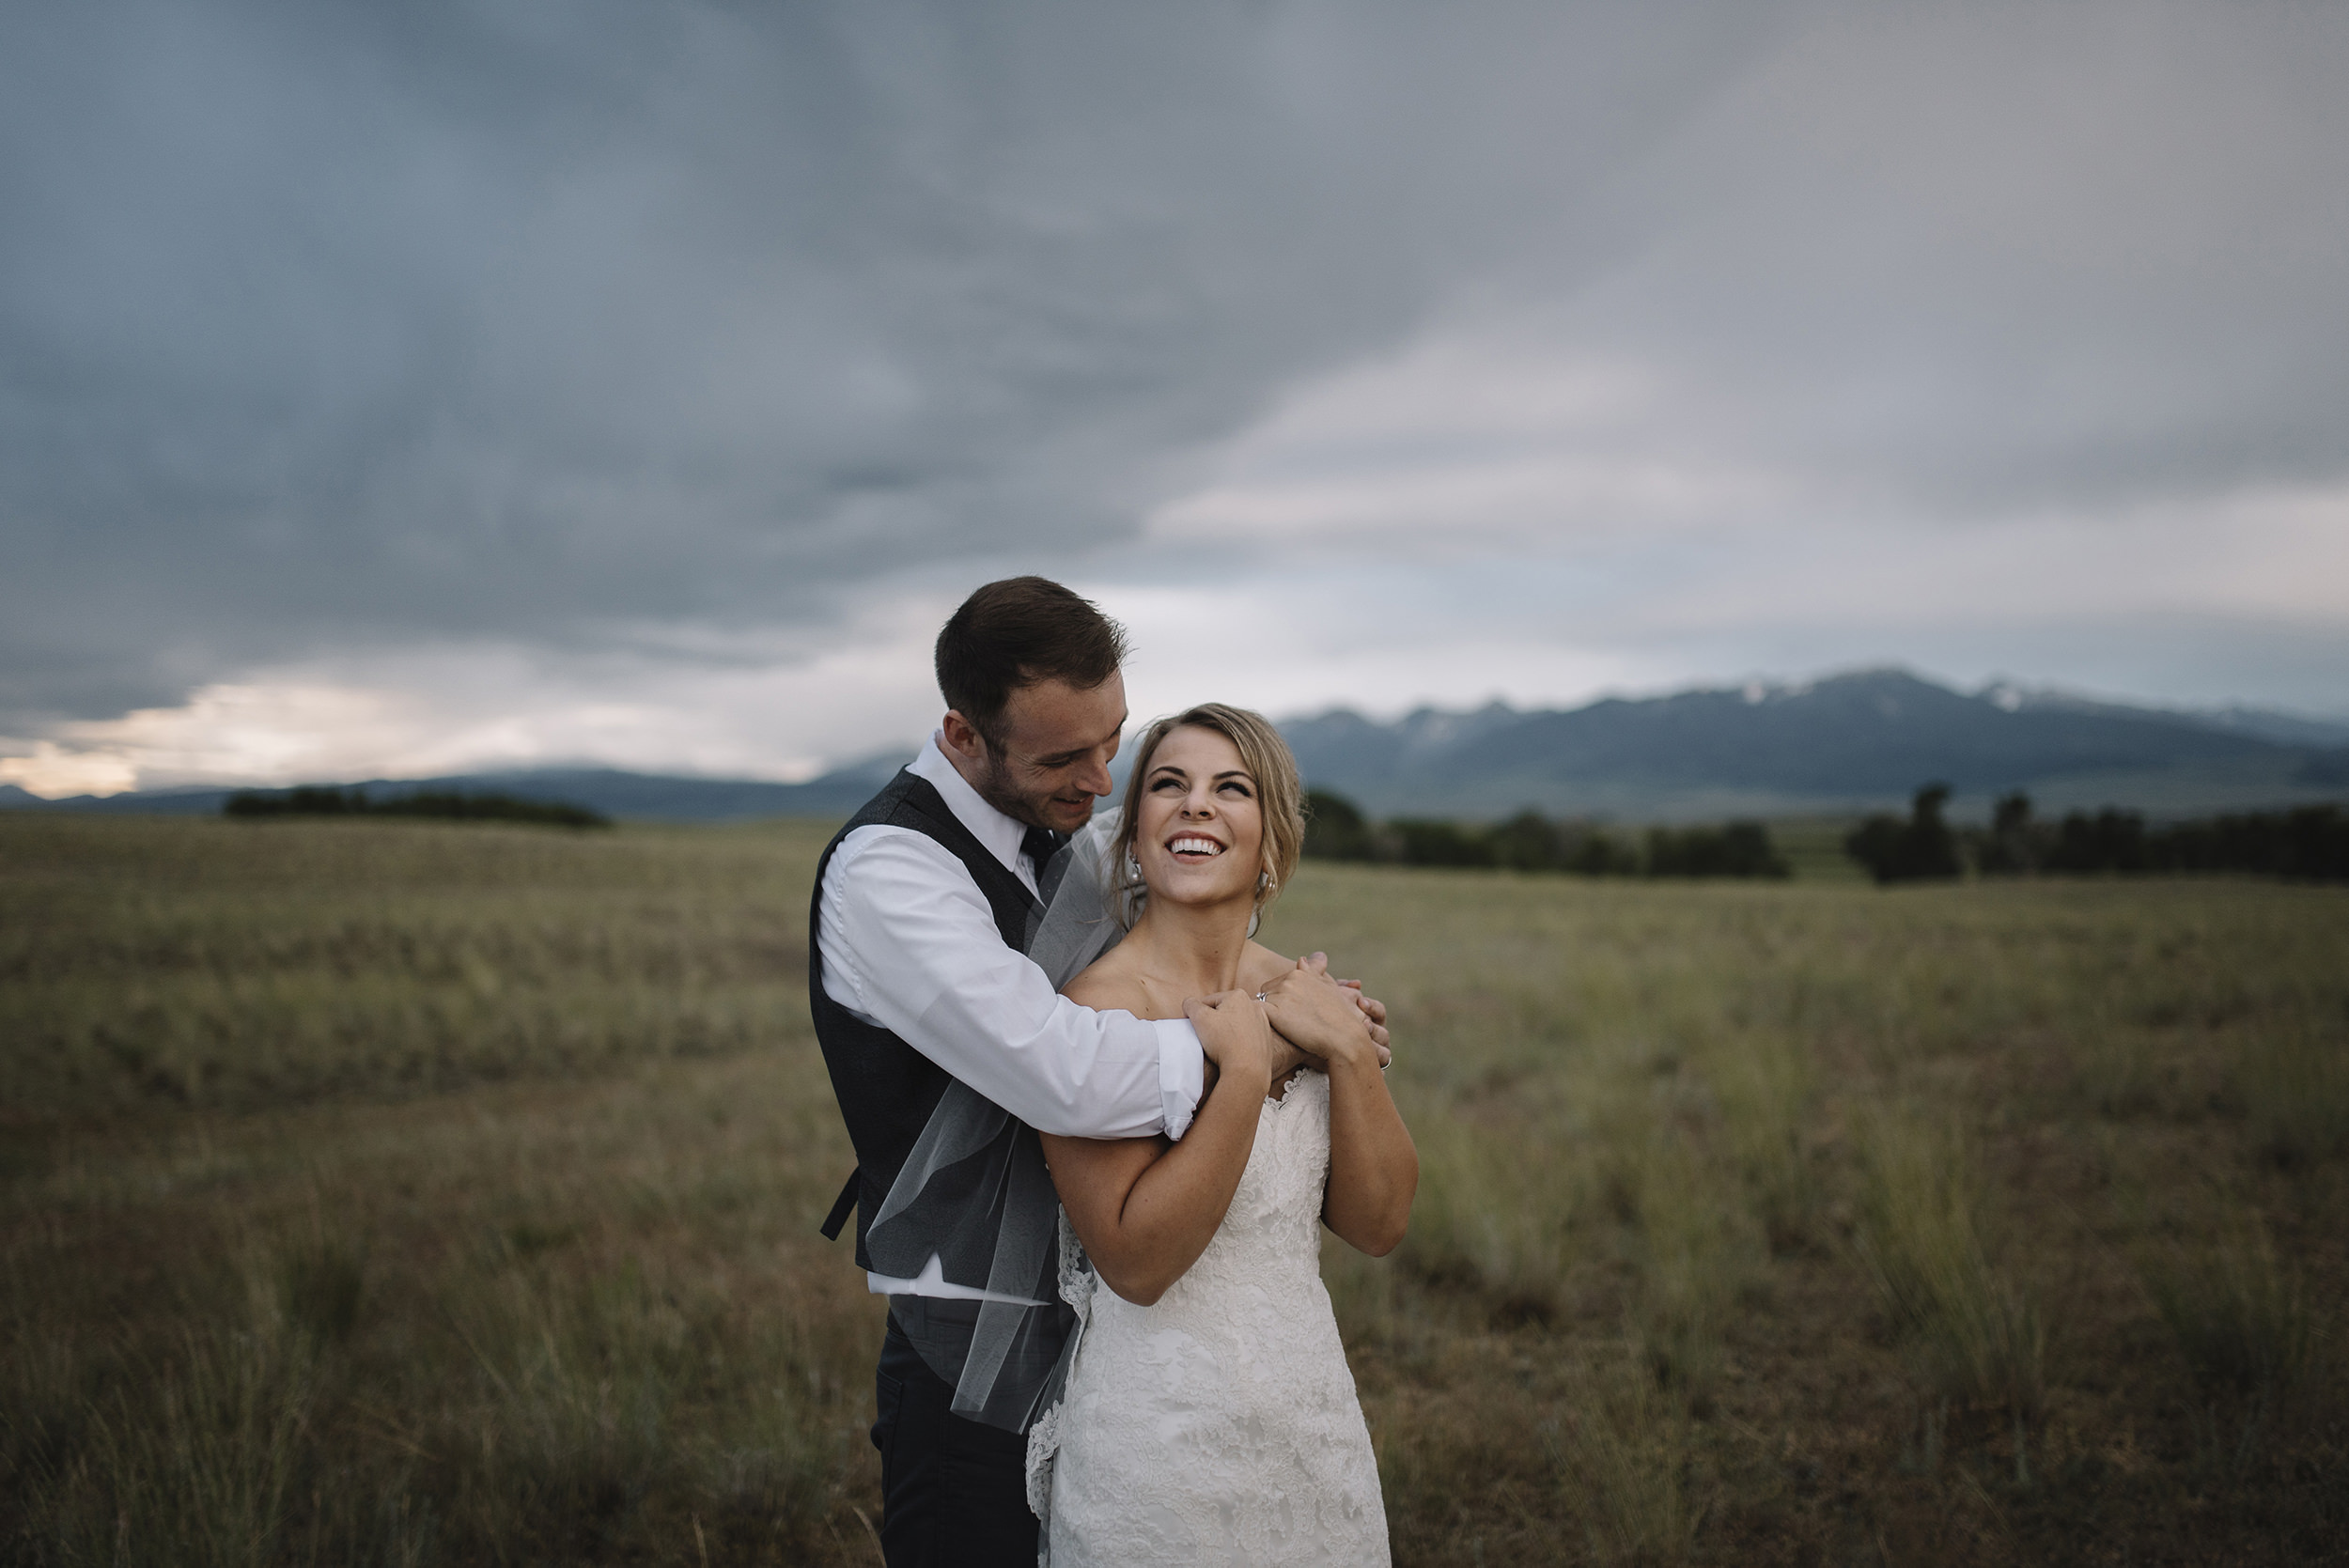 Colby-and-Jess-Intimate-Backyard-Wedding-Bozeman-Montana172.jpg